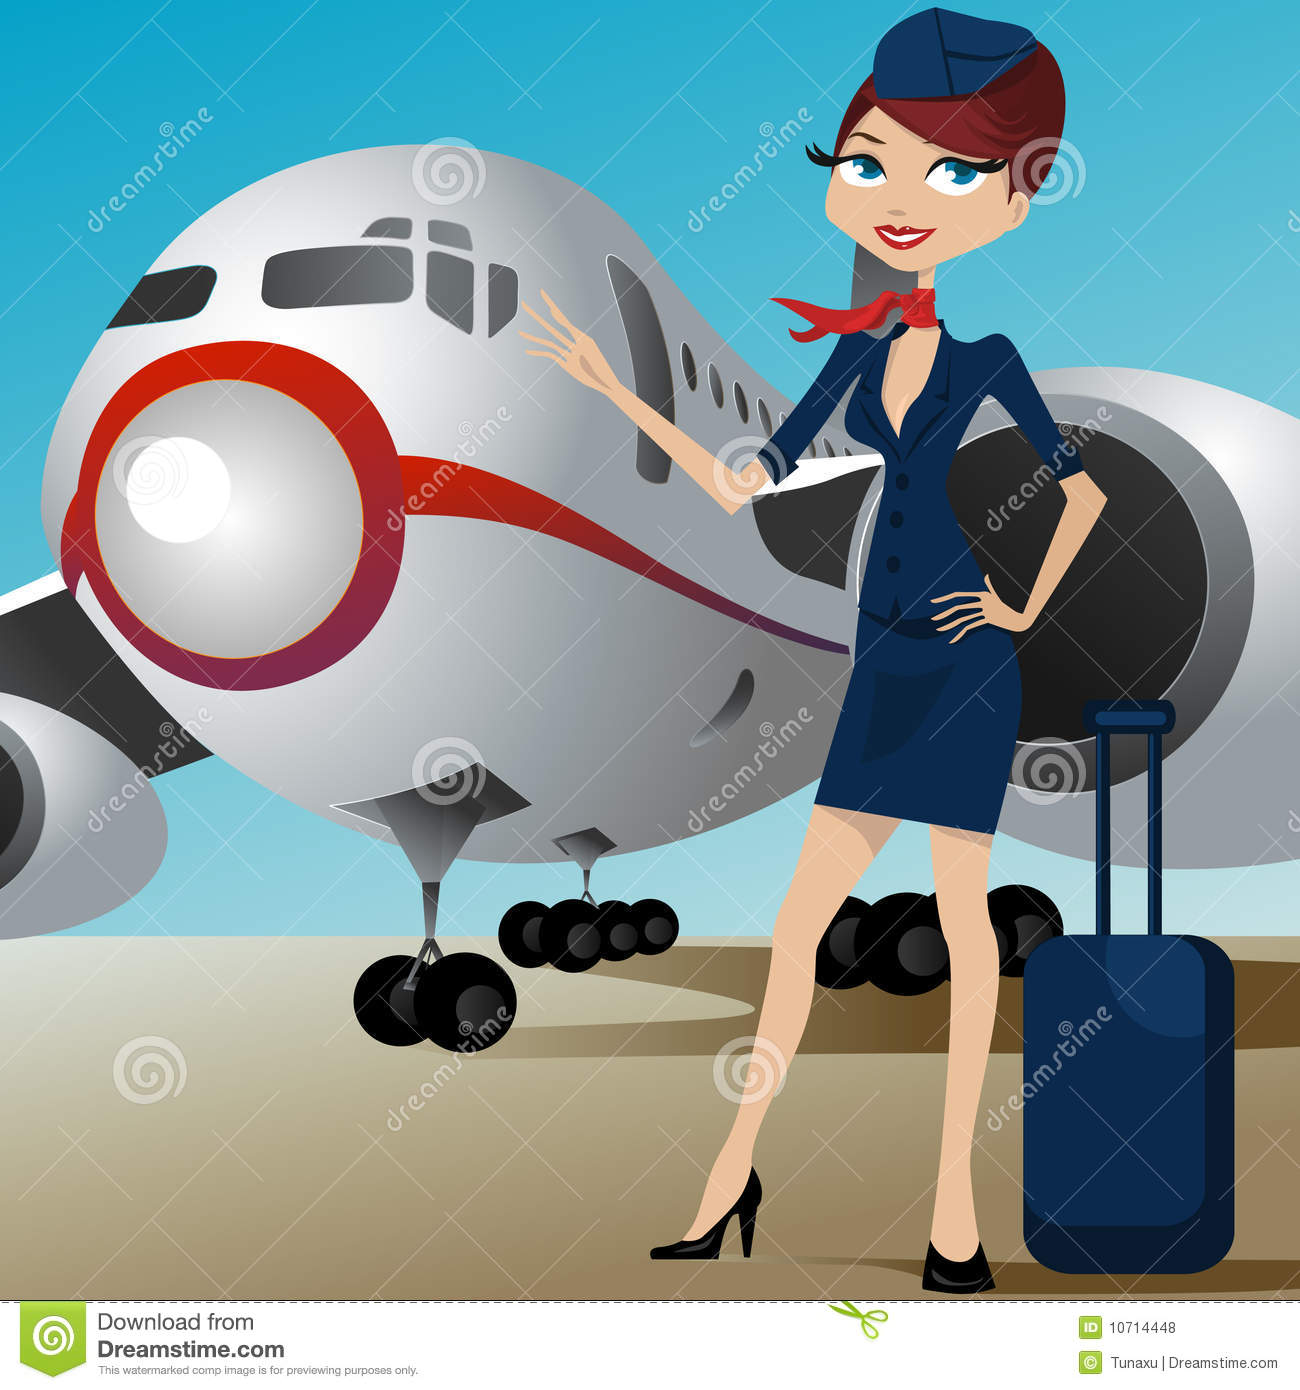 hand plane clipart with Royalty Vrije Stock Foto S De Stewardess Van De Luchtvaartlijn Met Vliegtuig Image10714448 on Capas De Facebook  o Fazer also Time Is Of The Essence furthermore 1437132107 264086 moreover A Young Boy Playing With A Paper Airplane additionally Smartphone Images Free.